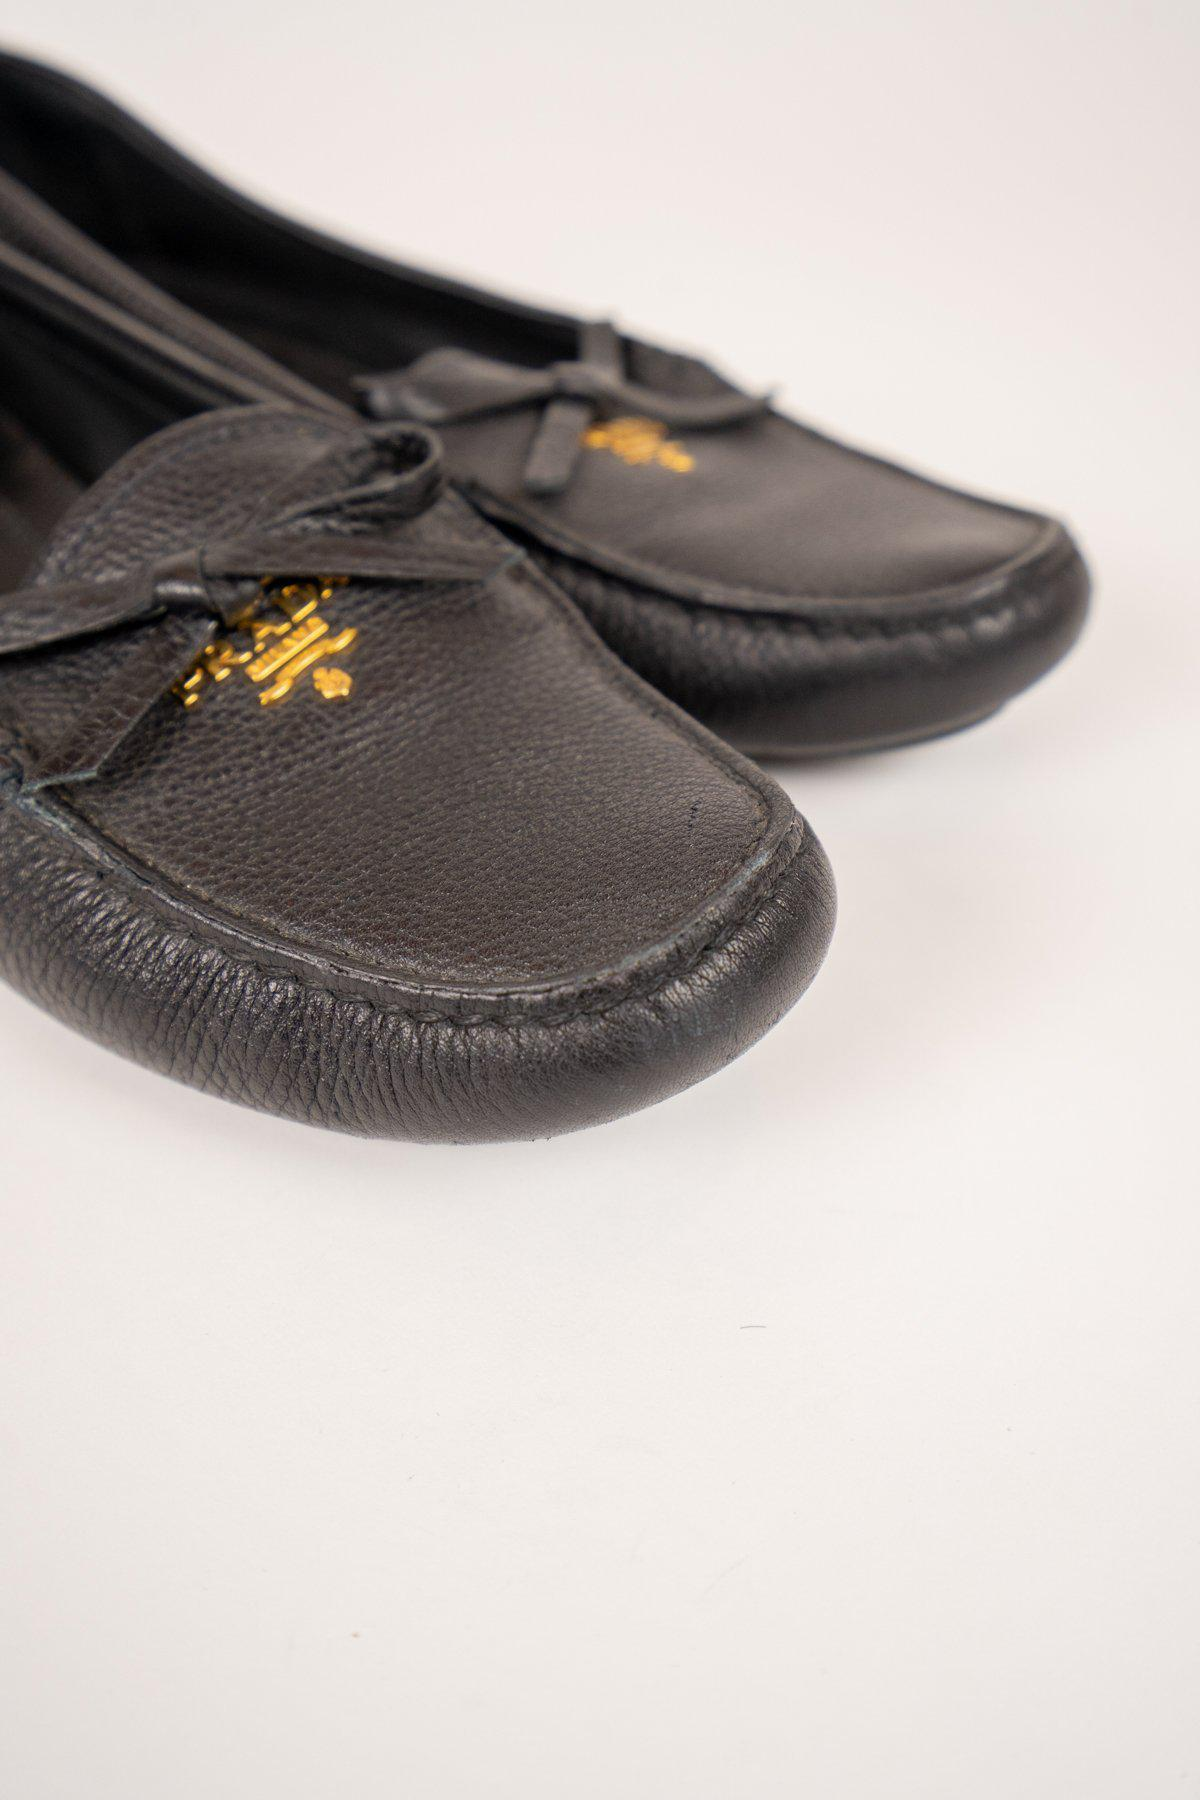 Tory Burch Black Patent Loafers